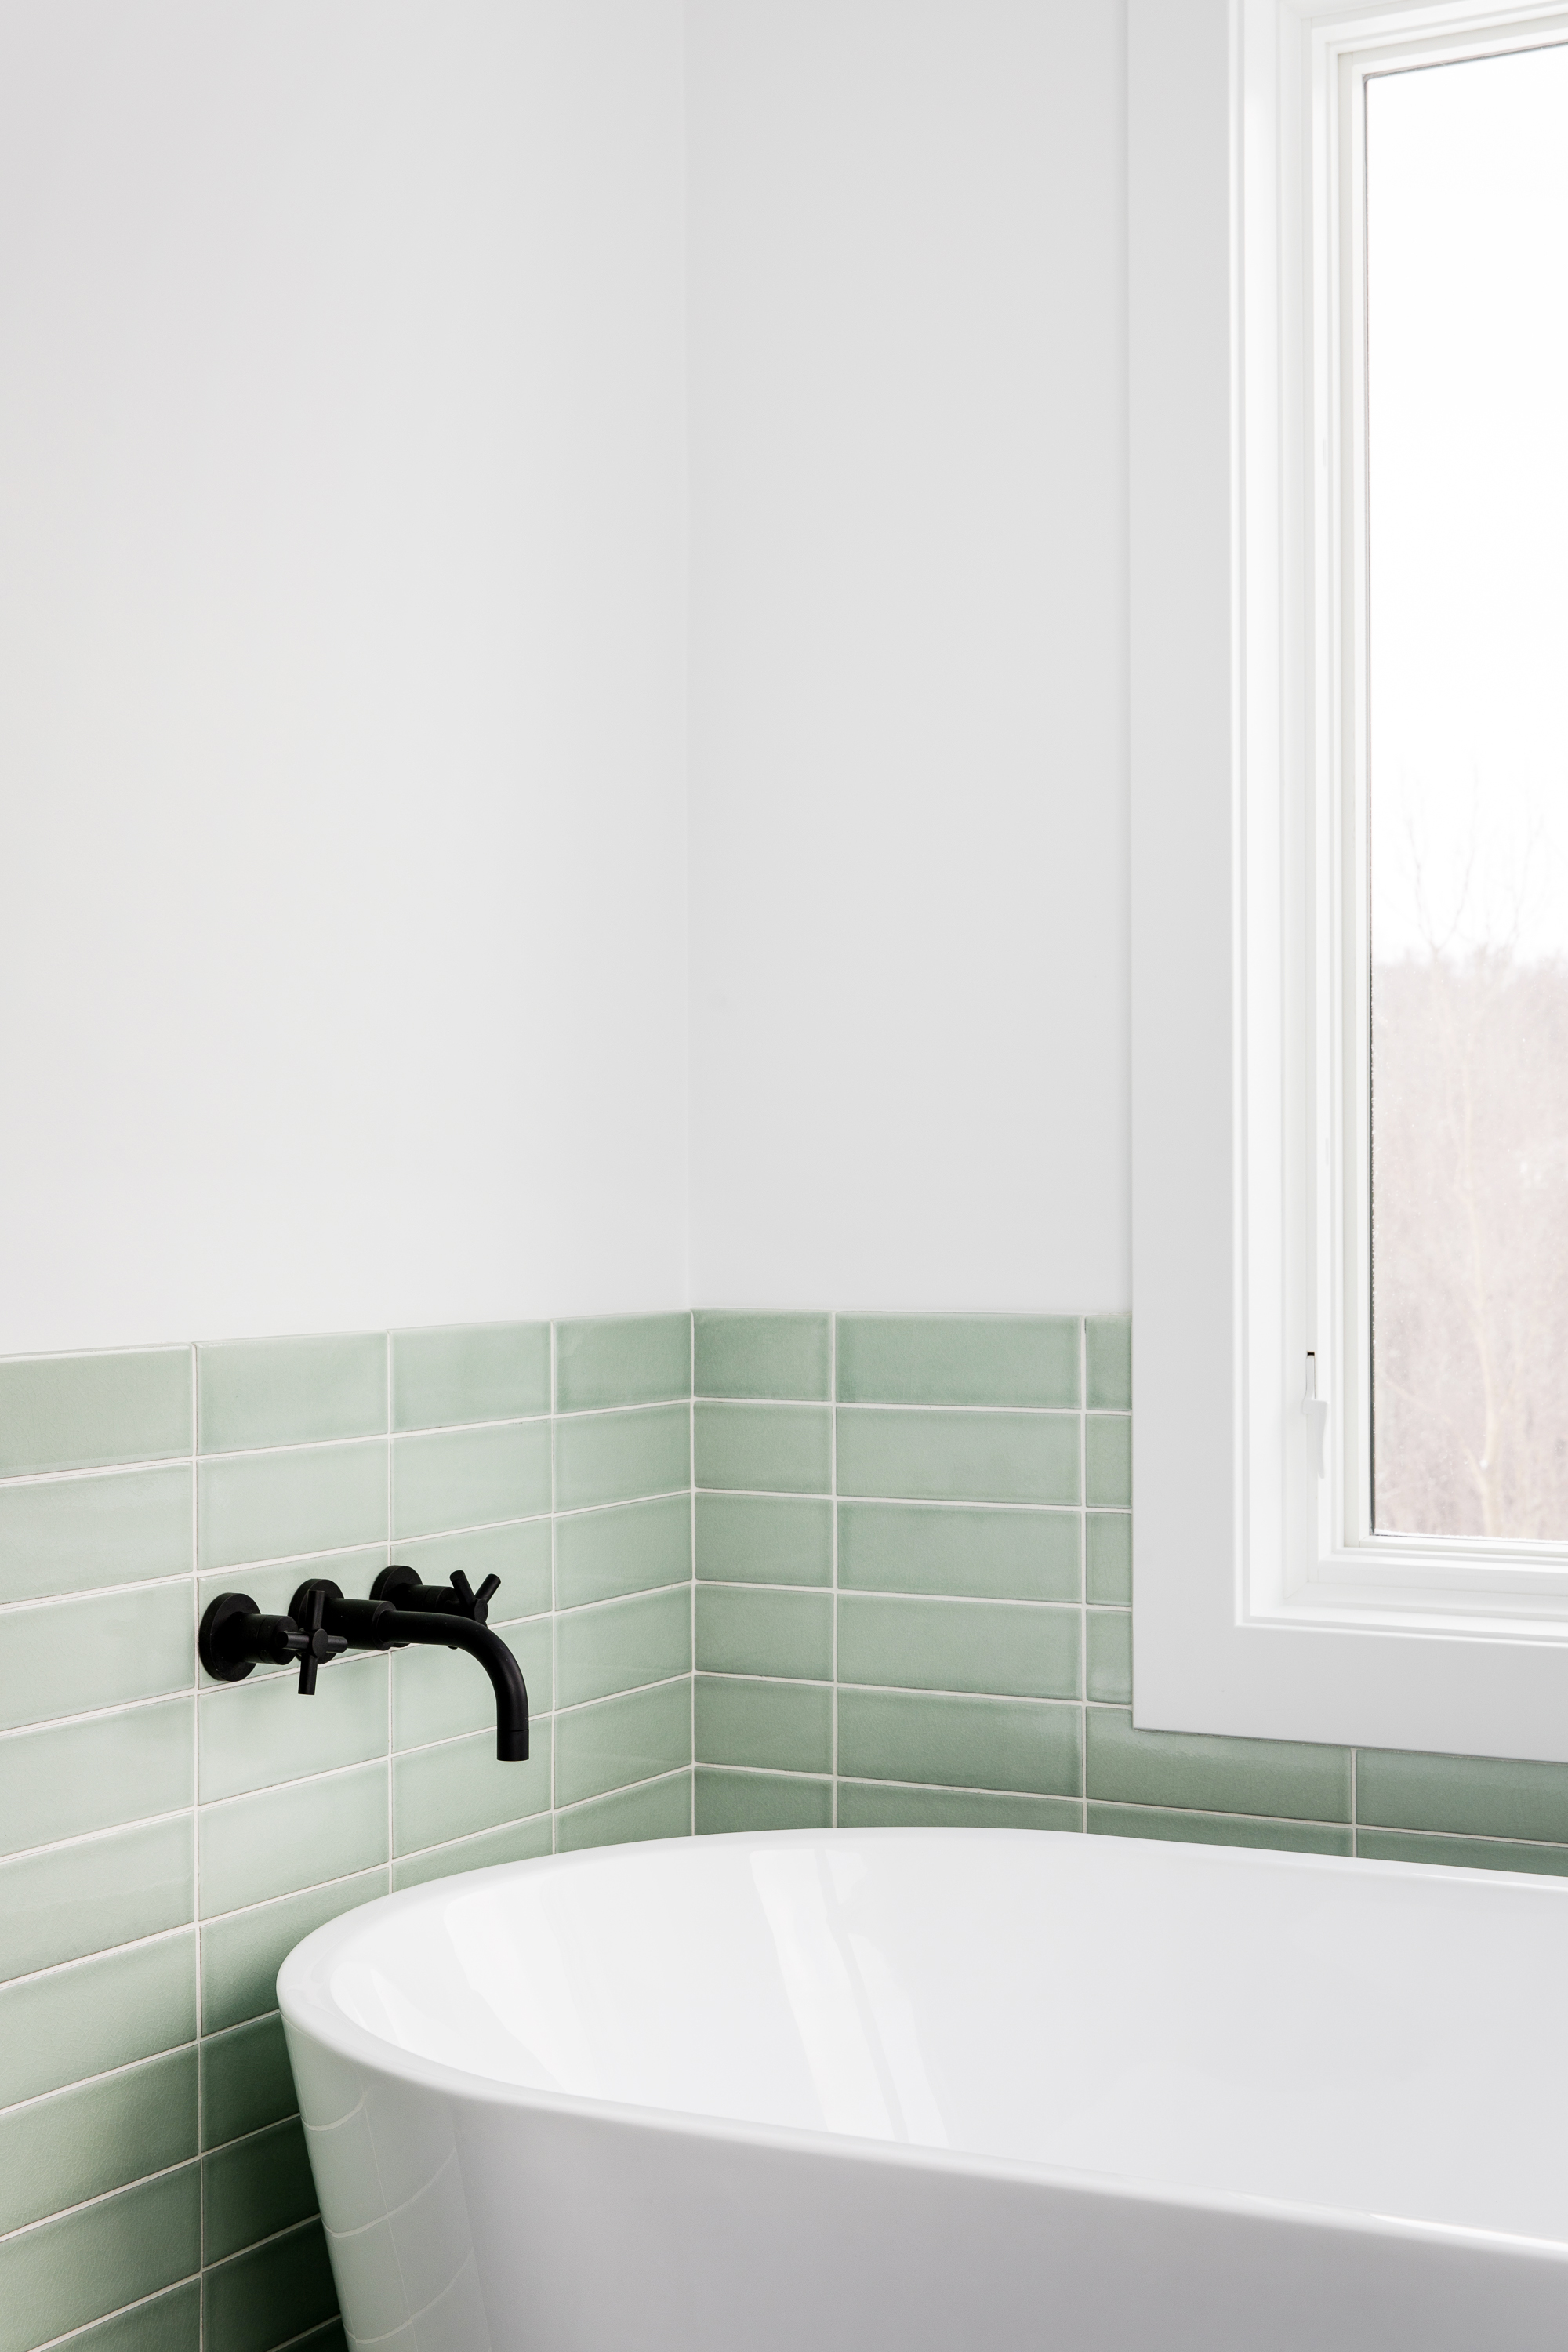 2018_Q1_image_residential_influencer_Fresh_Exchange_master_bathroom_tile_wall_salton_sea_3x9_straight_set_tub_surround_wainscot_detail_3.jpg?mtime=20180610101817#asset:265429